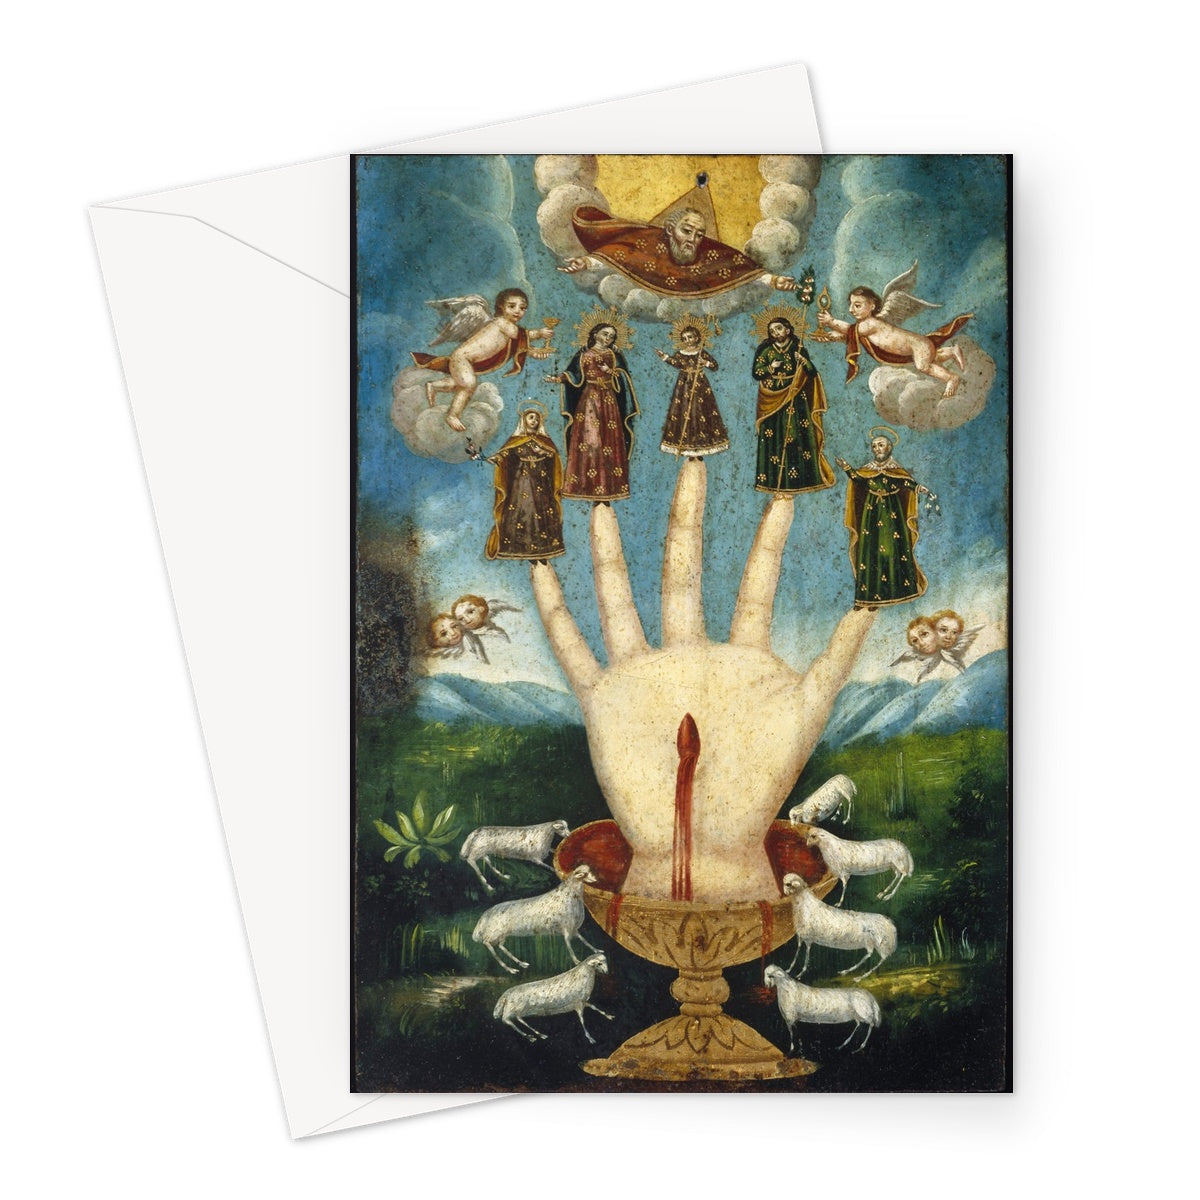 Mano Poderosa (The All-Powerful Hand), or Las Cinco Personas (The Five Persons), 19th century. Oil on metal (possibly tin-plated iron), Mexico, Brooklyn Museum.  These greetings cards are printed on high-quality 330gsm Fedrigoni card.